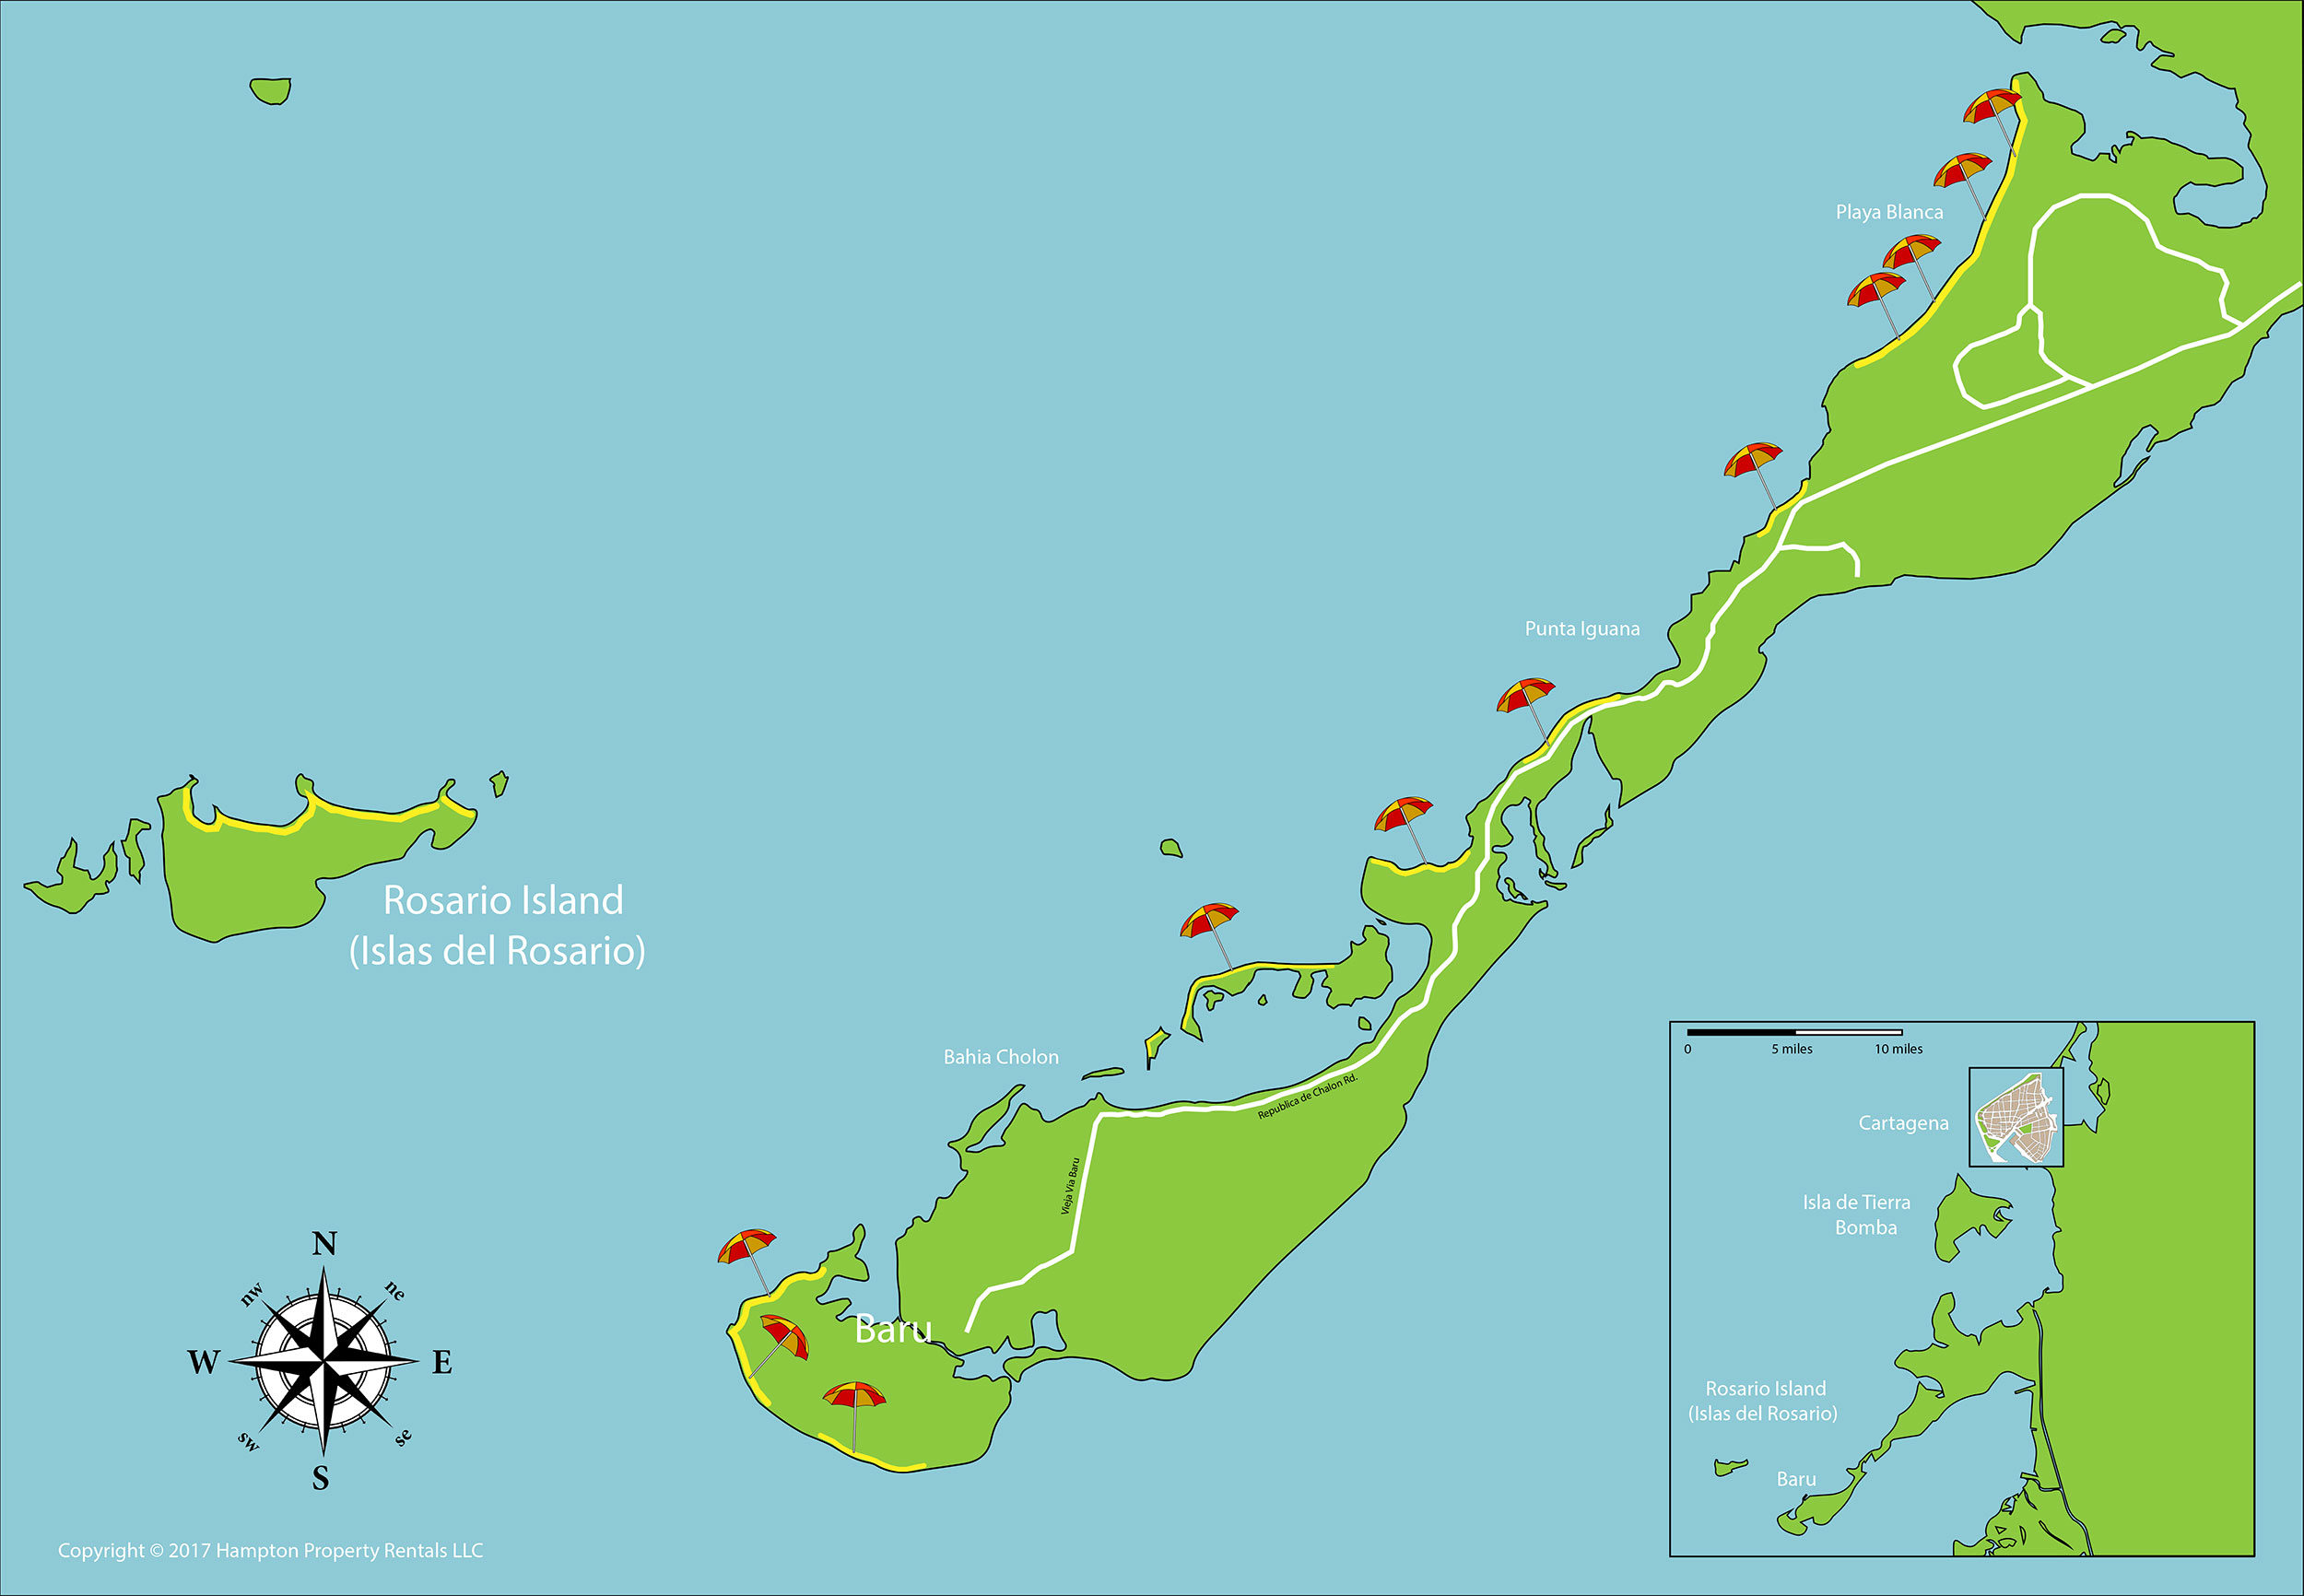 Map of Rosario Islands and Baru